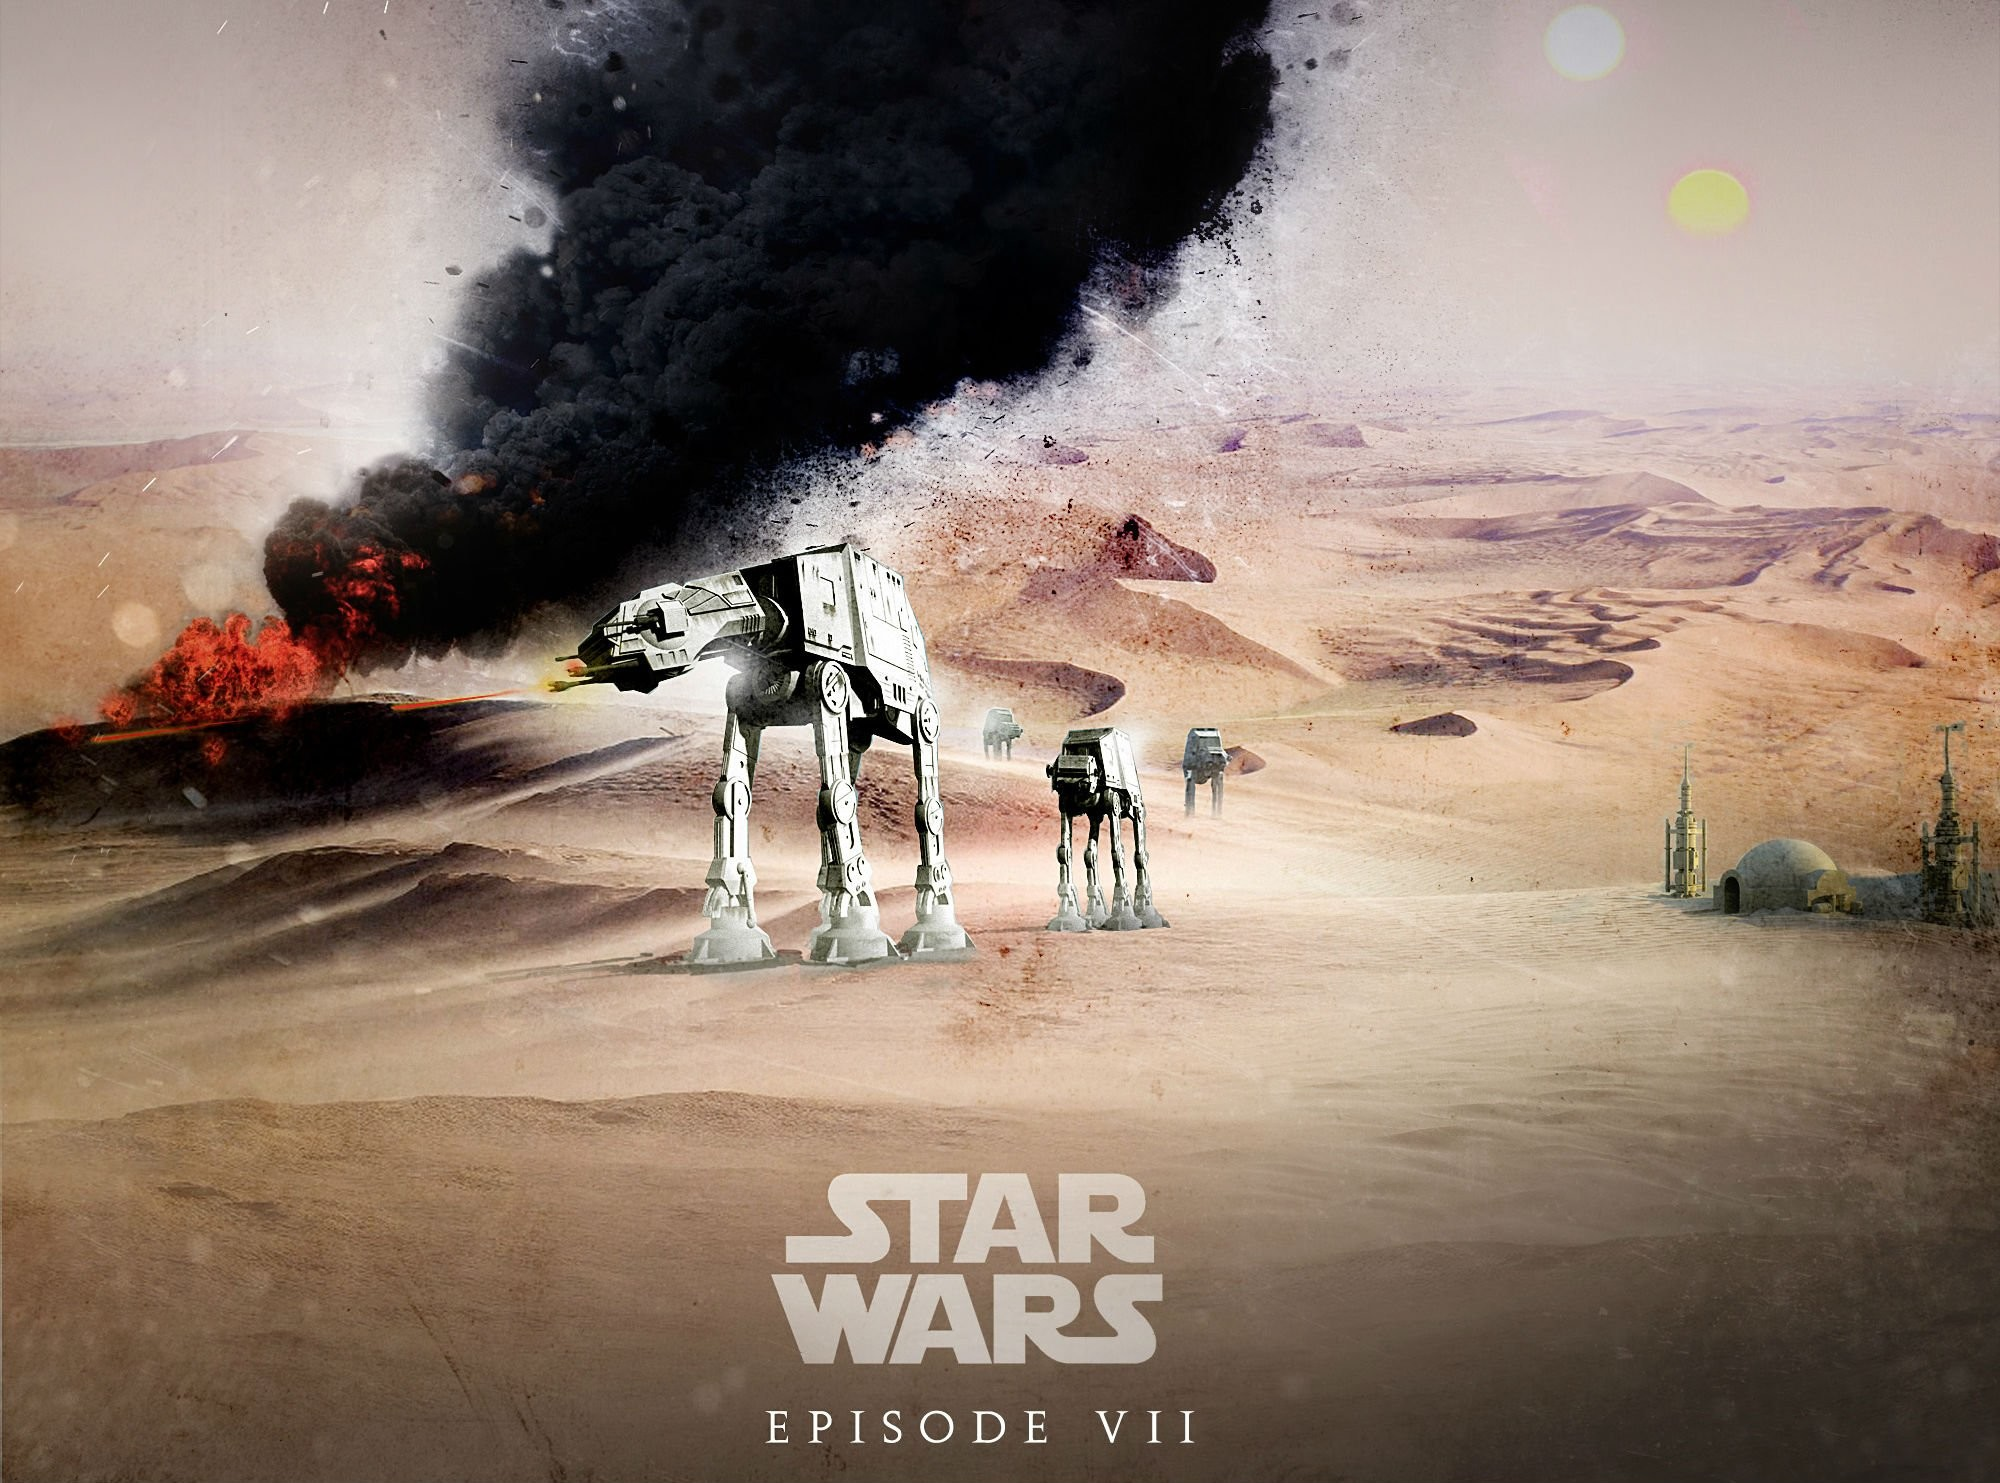 Star Wars Force Awakens Wallpapers (73+ Images